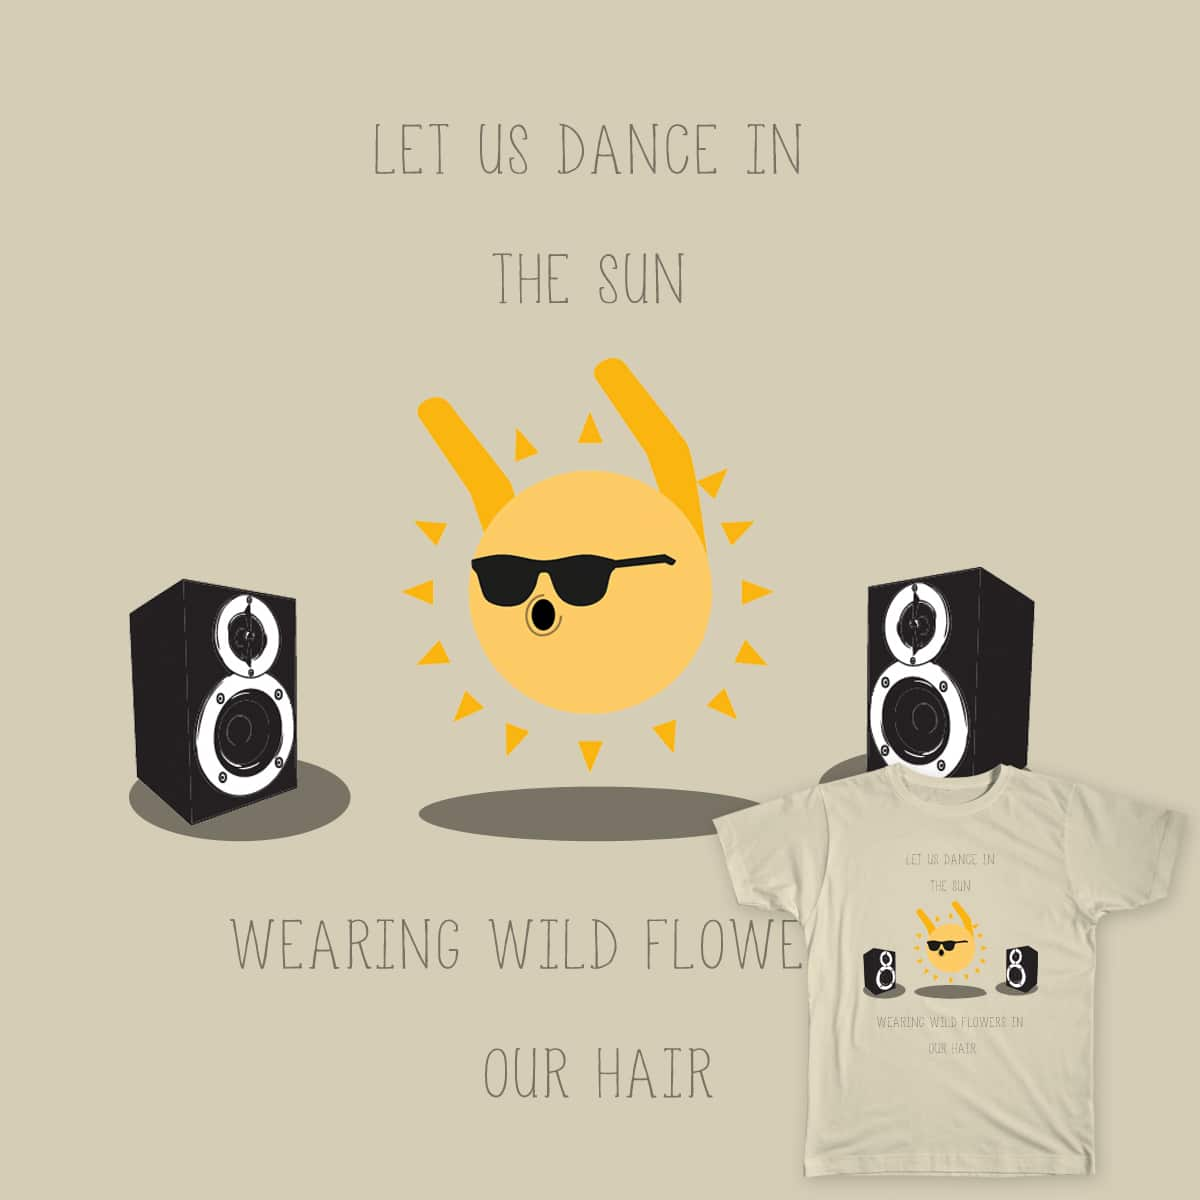 Dancing in the Sun by piuseliezer on Threadless